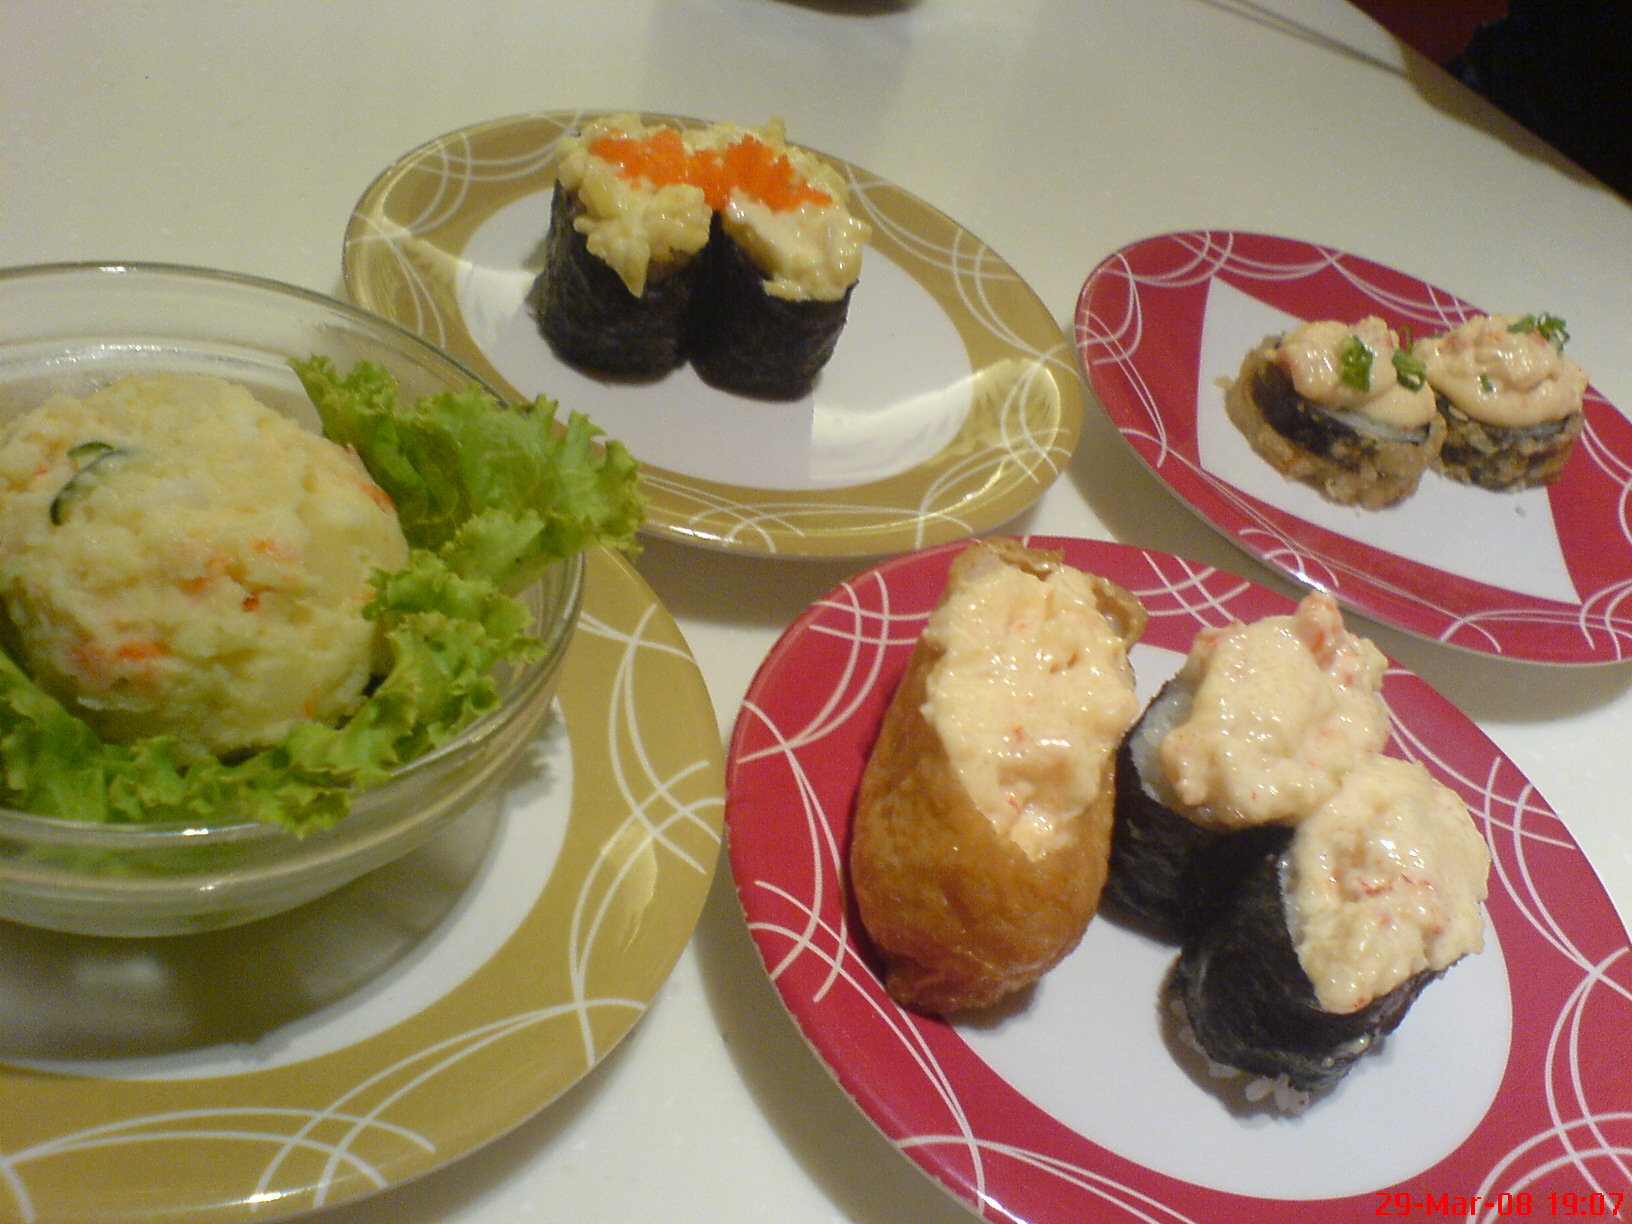 potato salad, lobster sushi, egg salad sushi